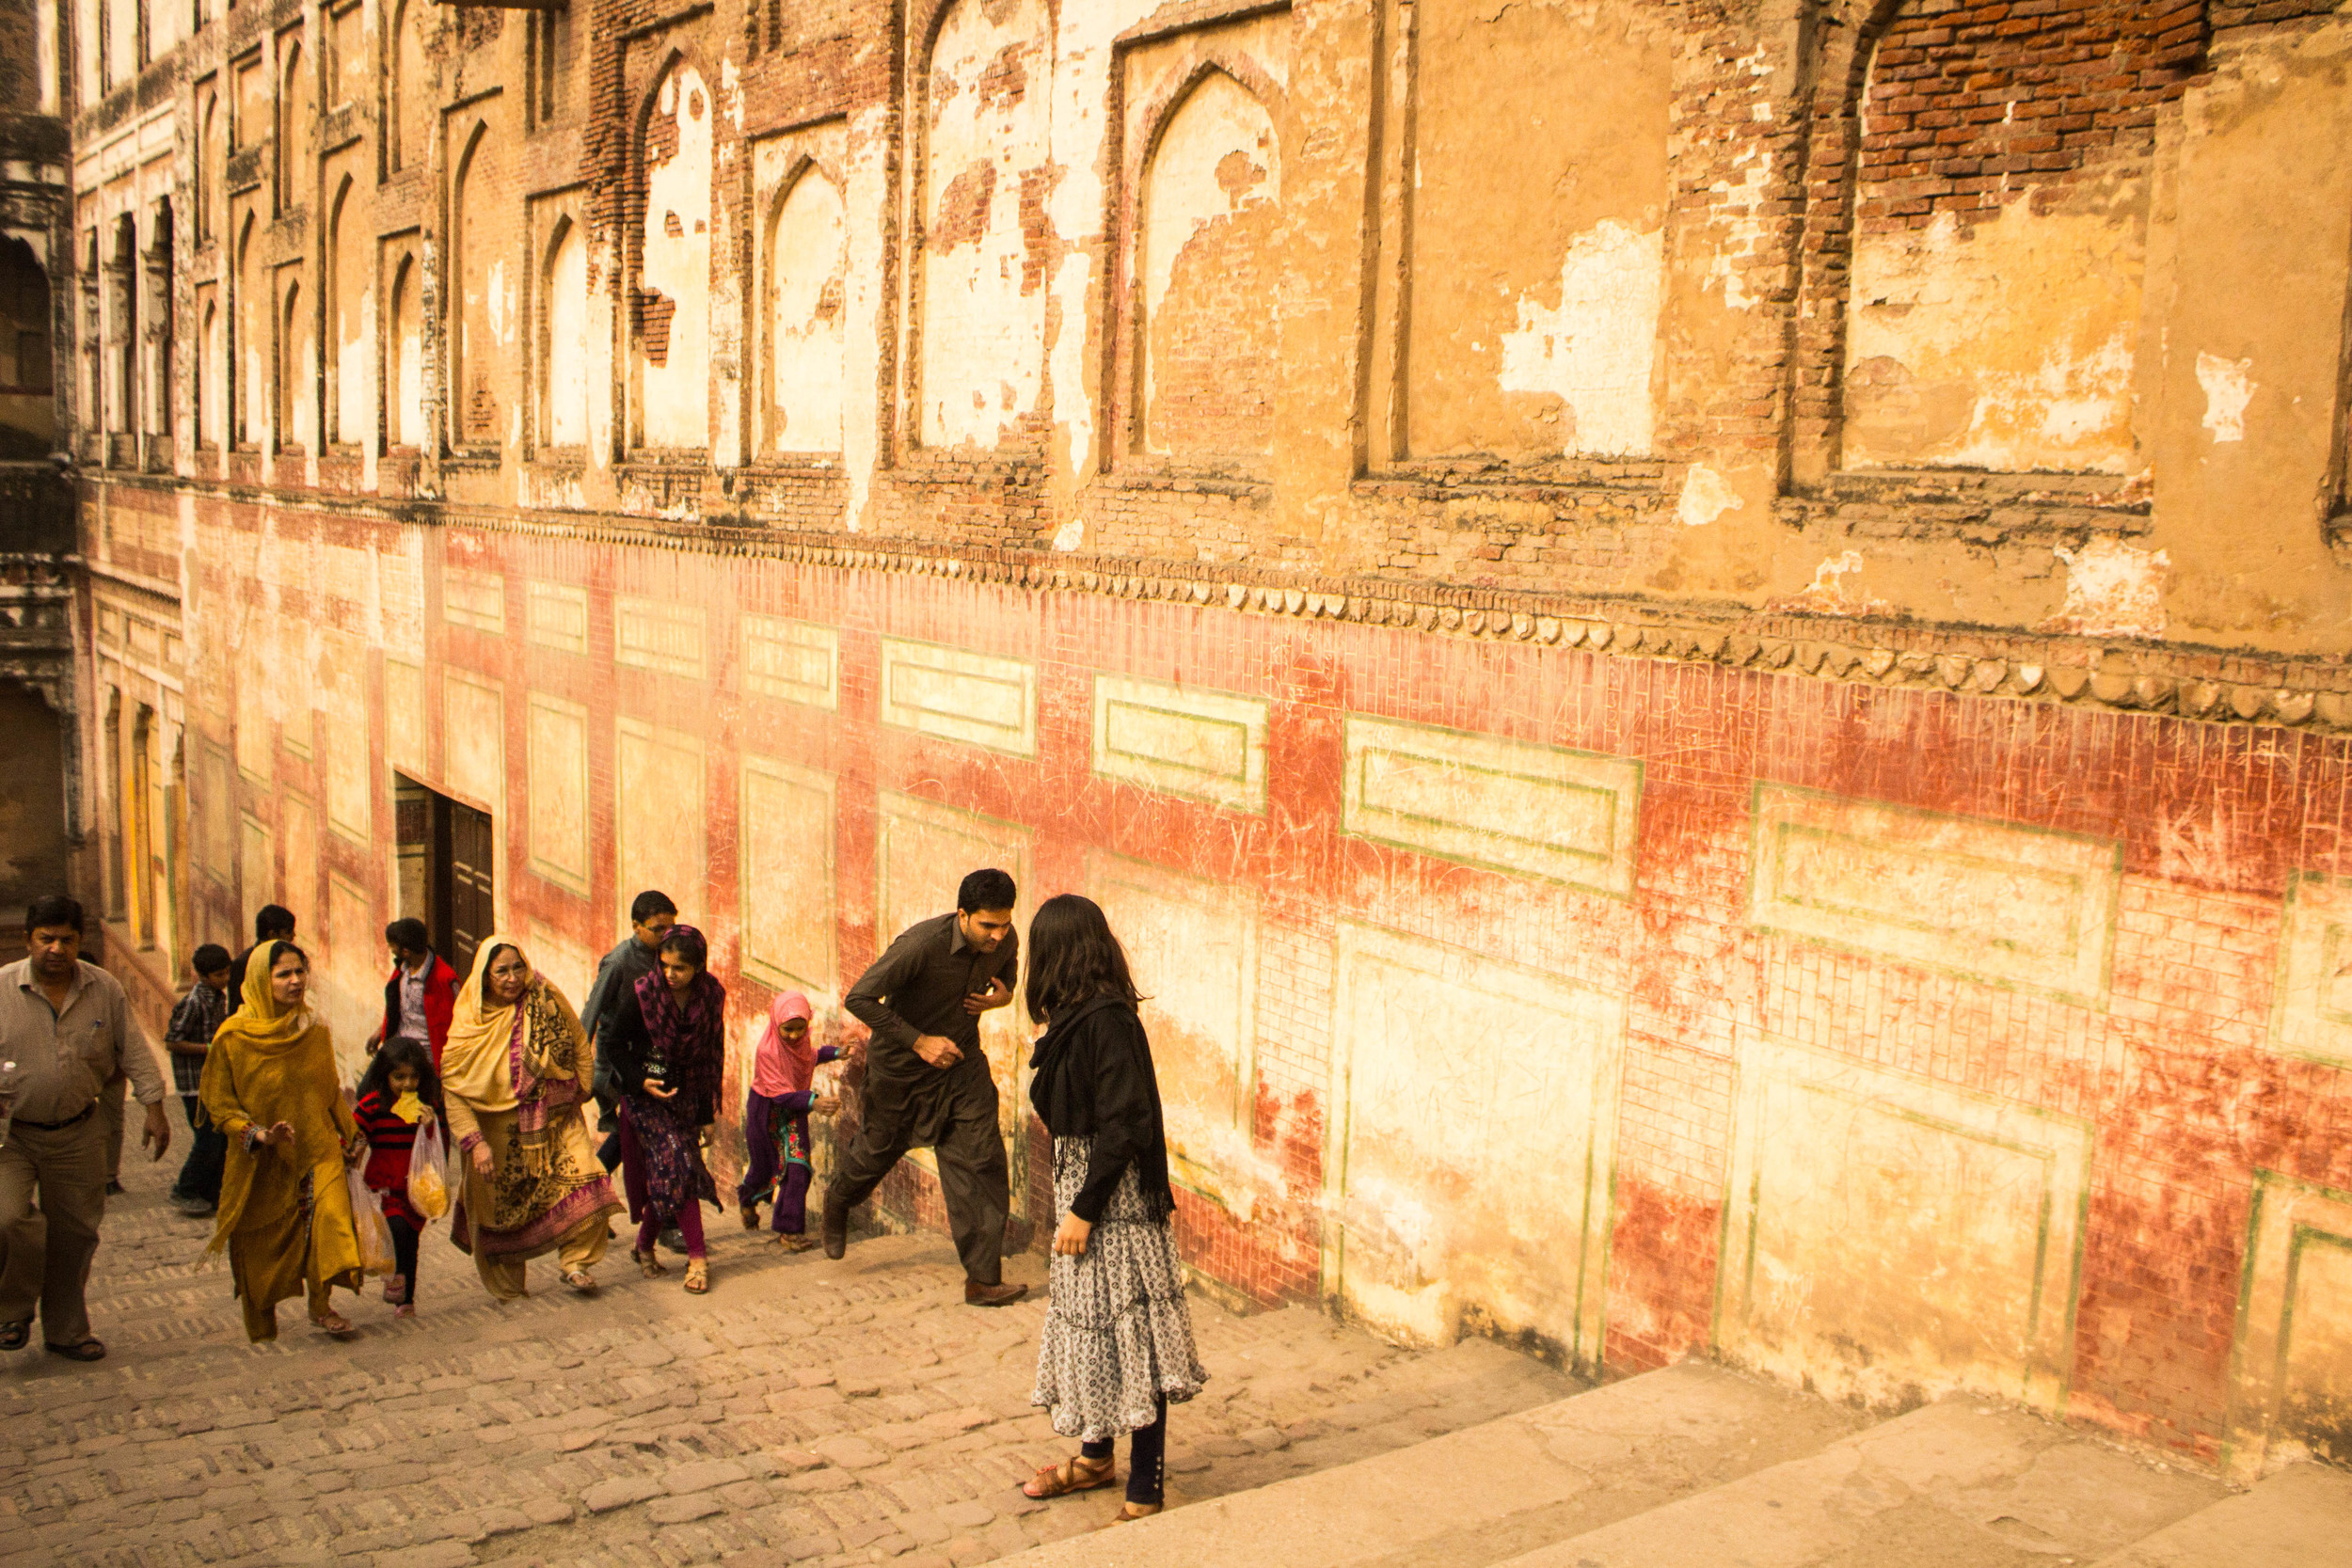 Families move between levels of the Lahore fort.